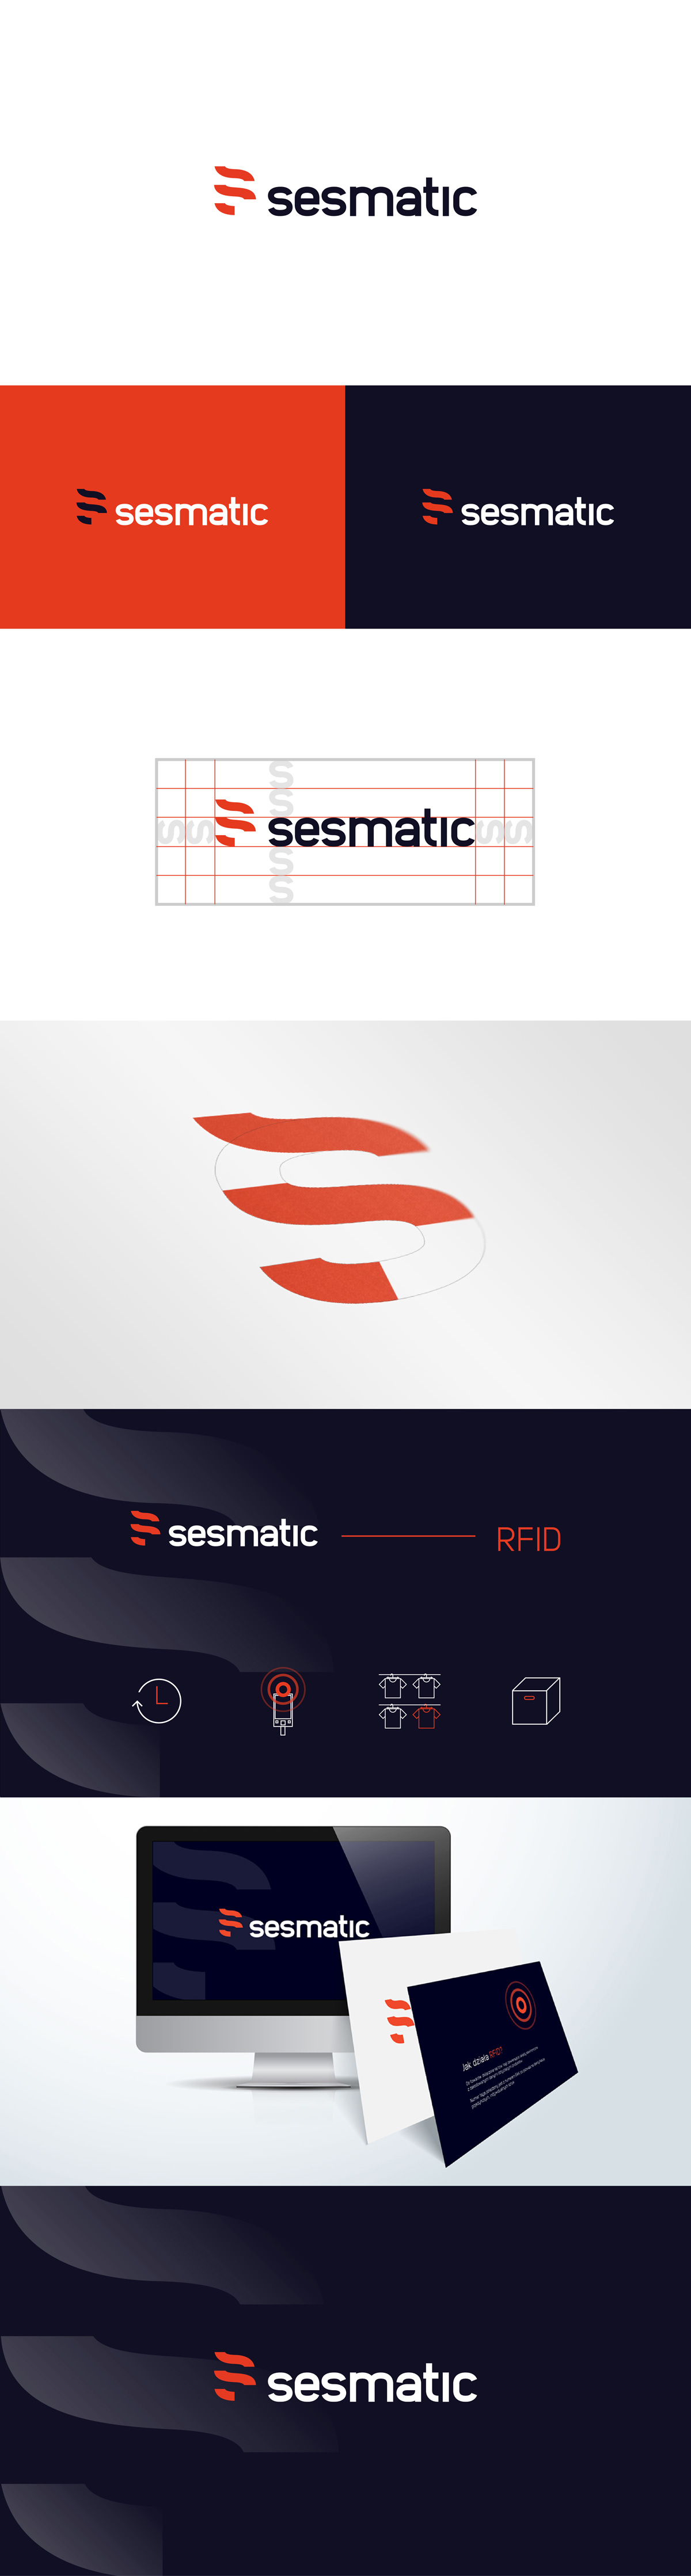 Visual identification for sesmatic - marketing agency You'll